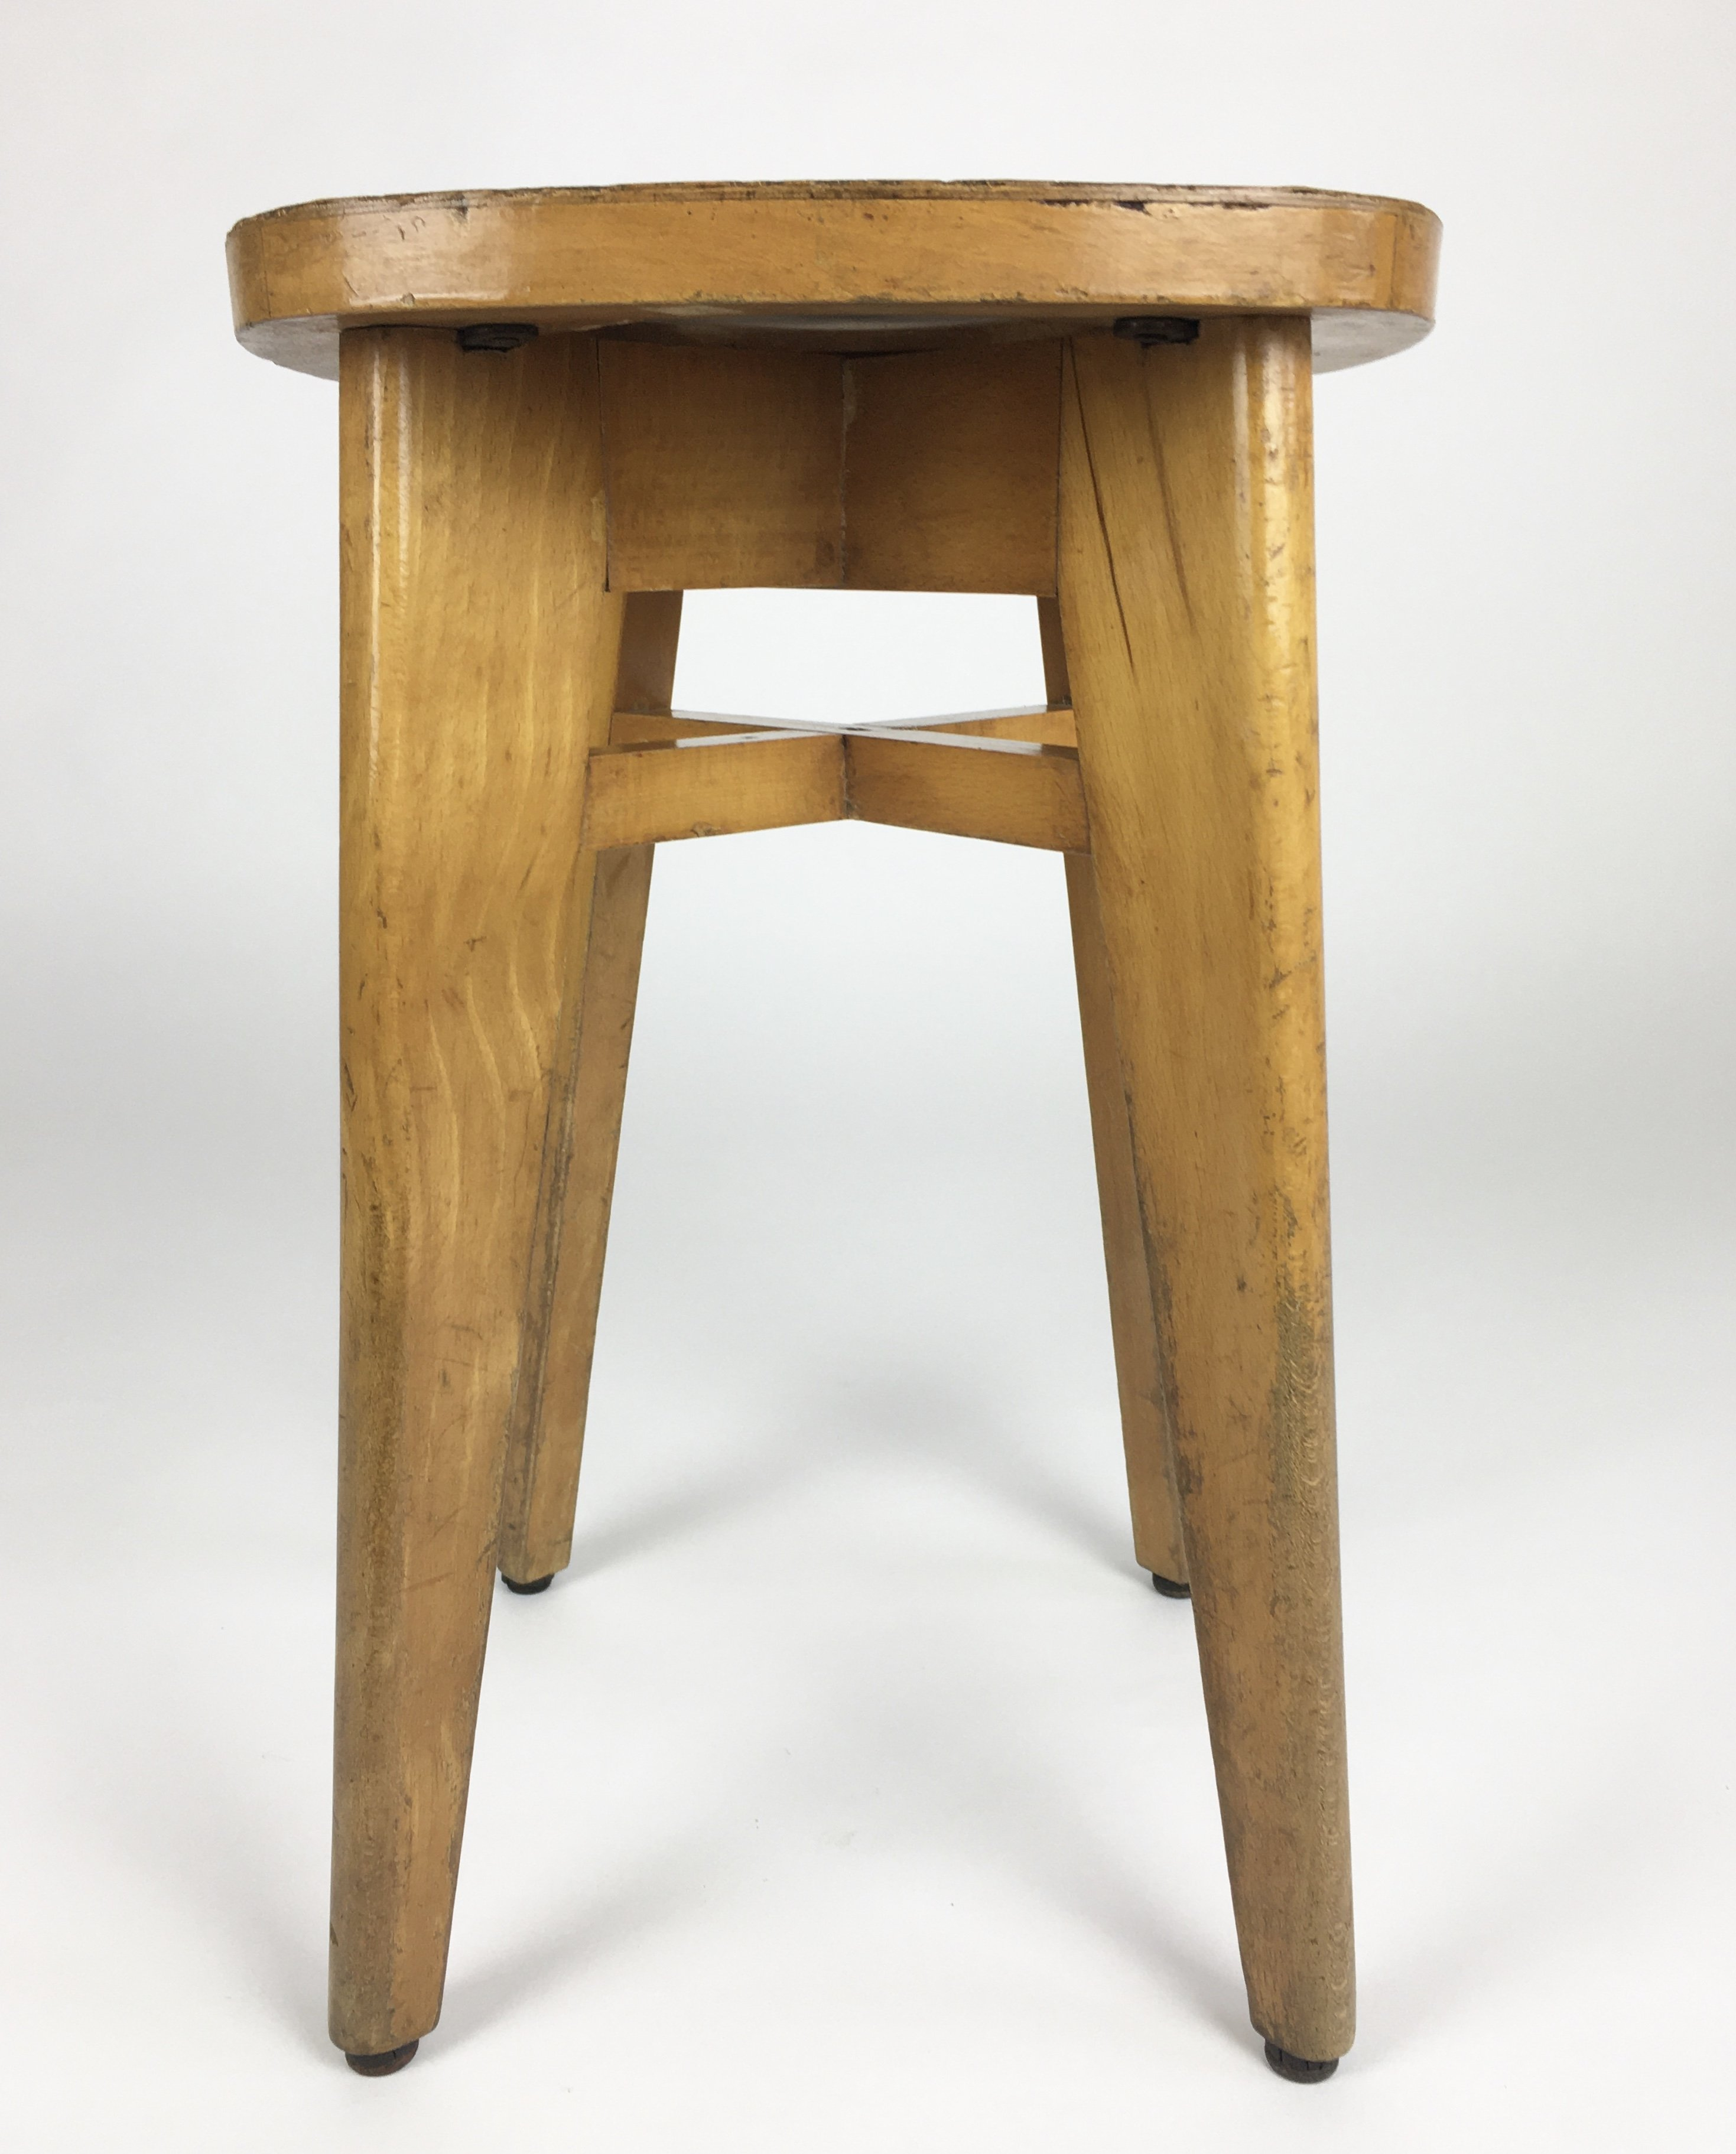 Admirable Mid Century Wooden Stool France 1950S Dailytribune Chair Design For Home Dailytribuneorg